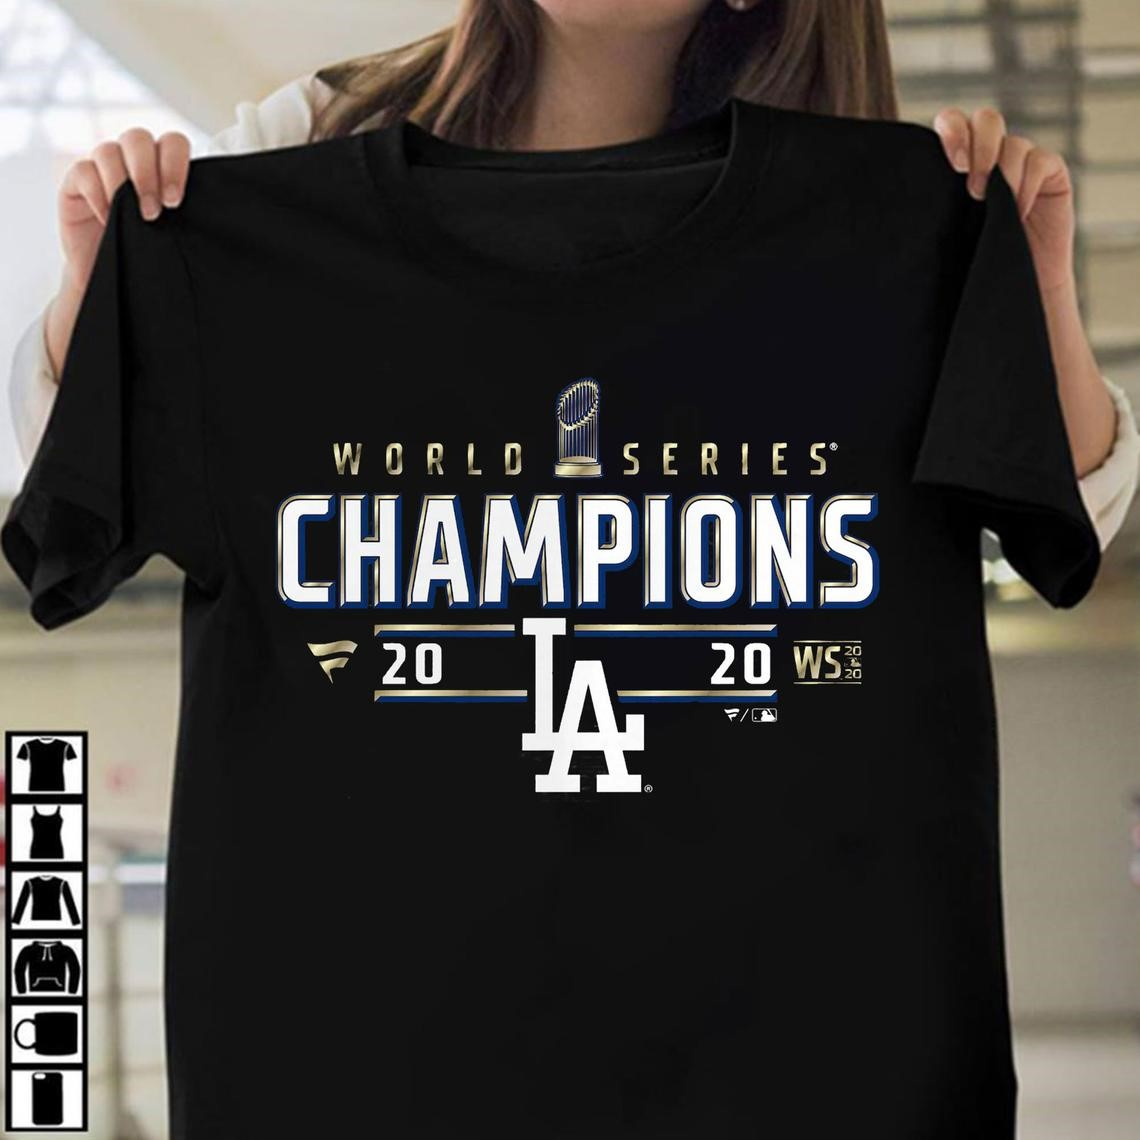 Los Angeles Dodgers 2020 World Series Champions Locker Room T-shirt The Dodgers Are World Series Champs